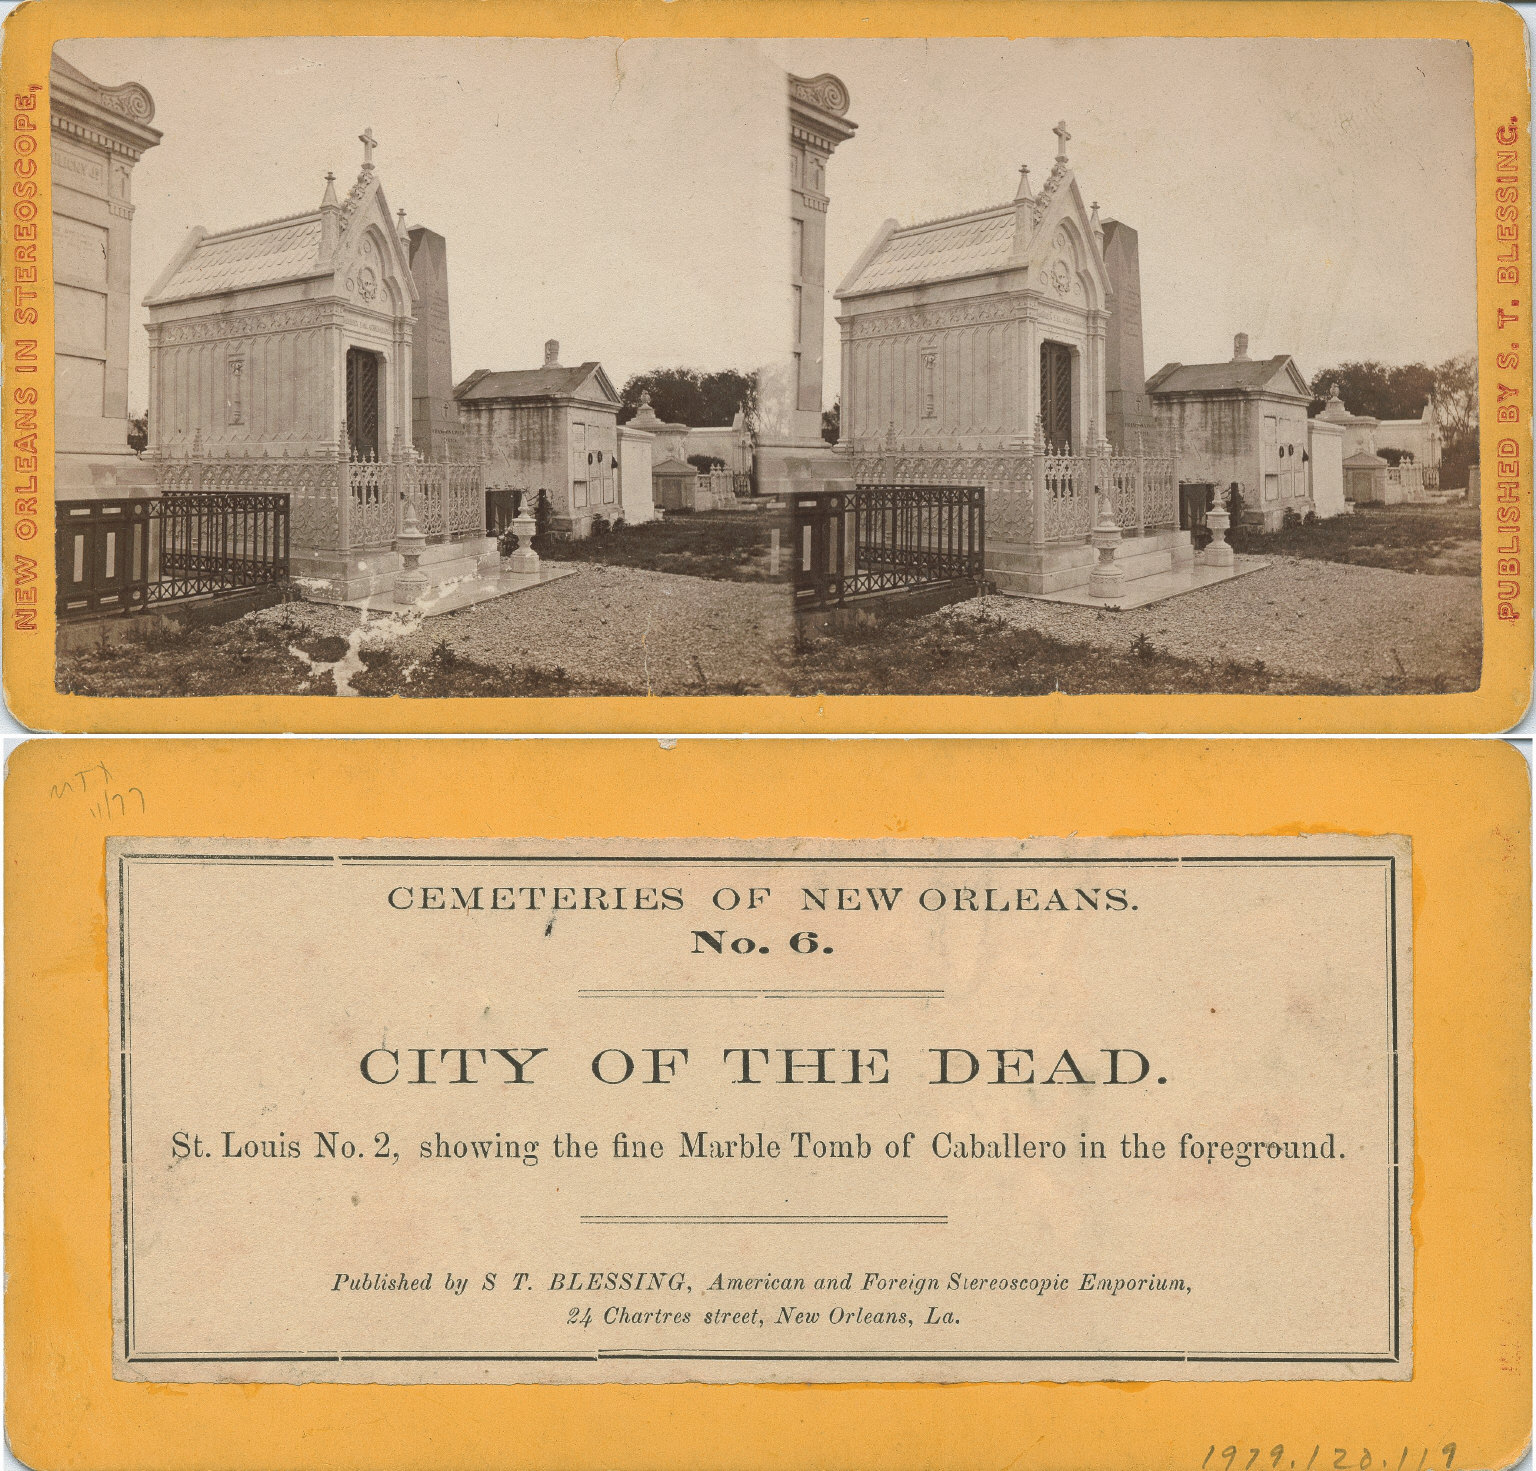 City of the dead St. Louis No. 2 showing the fine marble tomb of Caballero in the foreground